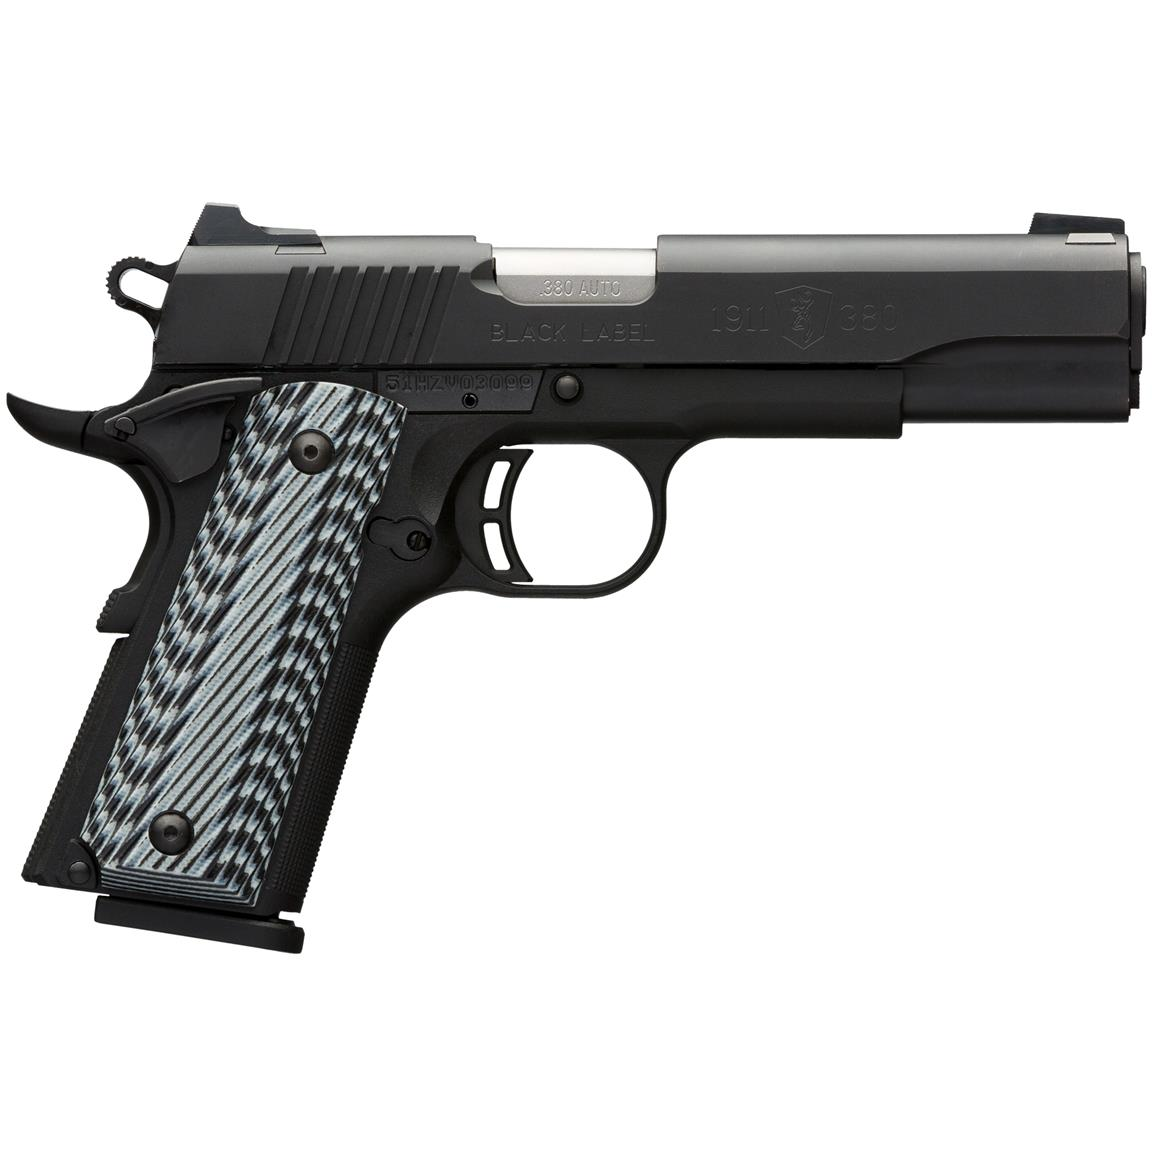 "Browning 1911-380 Black Label Pro, Semi-automatic, .380 ACP, 4.25"" Barrel, 8 rounds"